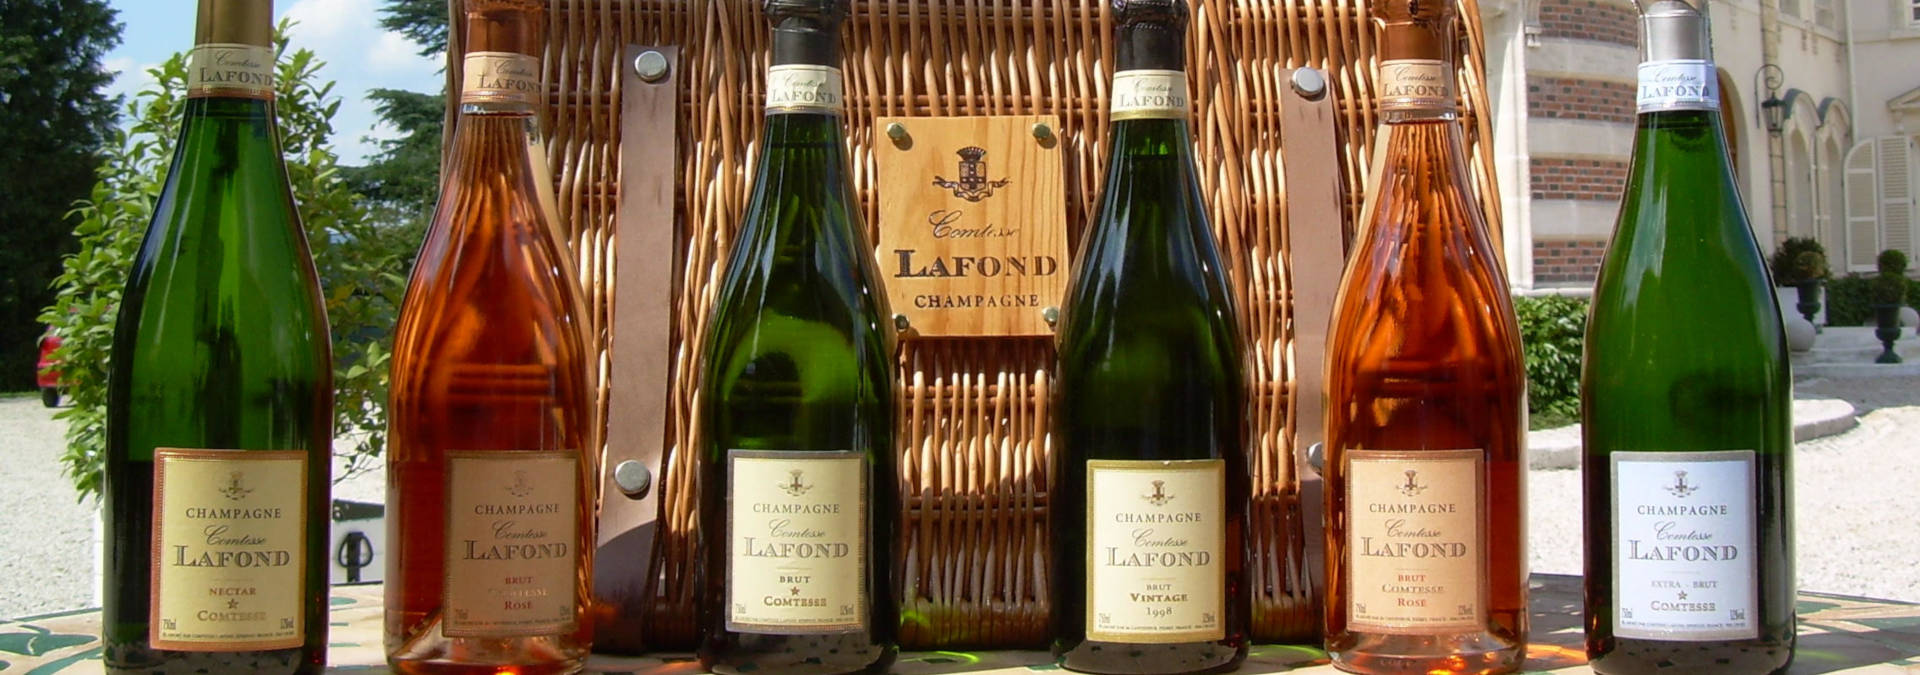 Tasting at the Showroom Comtesse Lafond